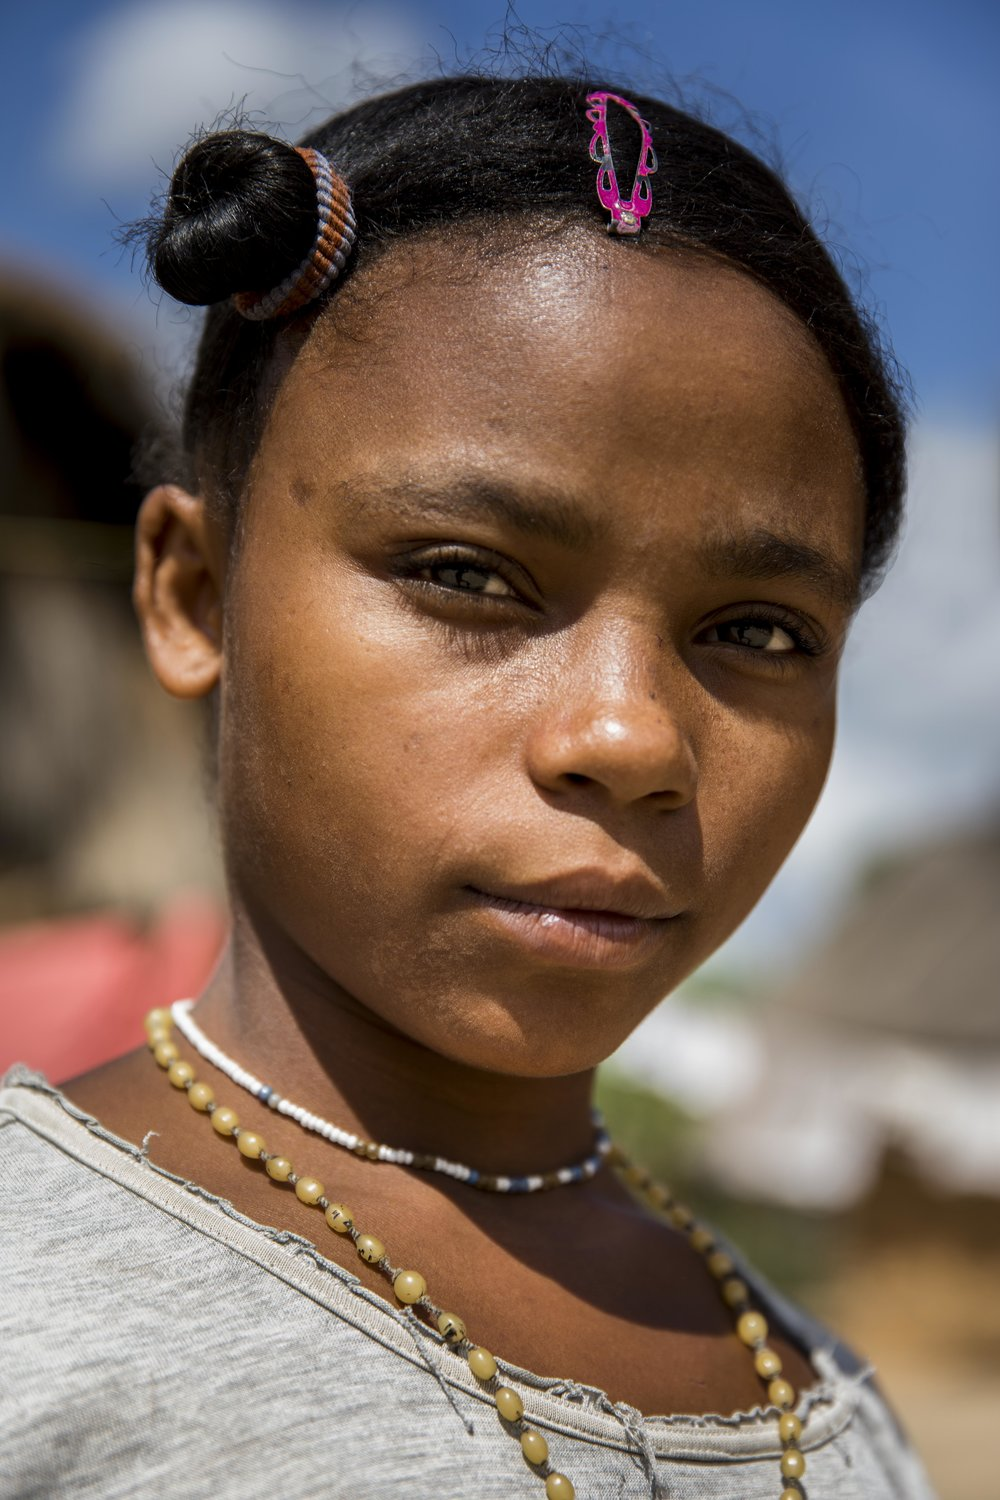 Angeline is 19 years old. She has 7 siblings, loves to talk but is sometimes shy. She was born and has lived in Amberomena her own life. She collects water 3 times a day with her mother. Health is her number one priority and she believes clean water will give her and her family just that.